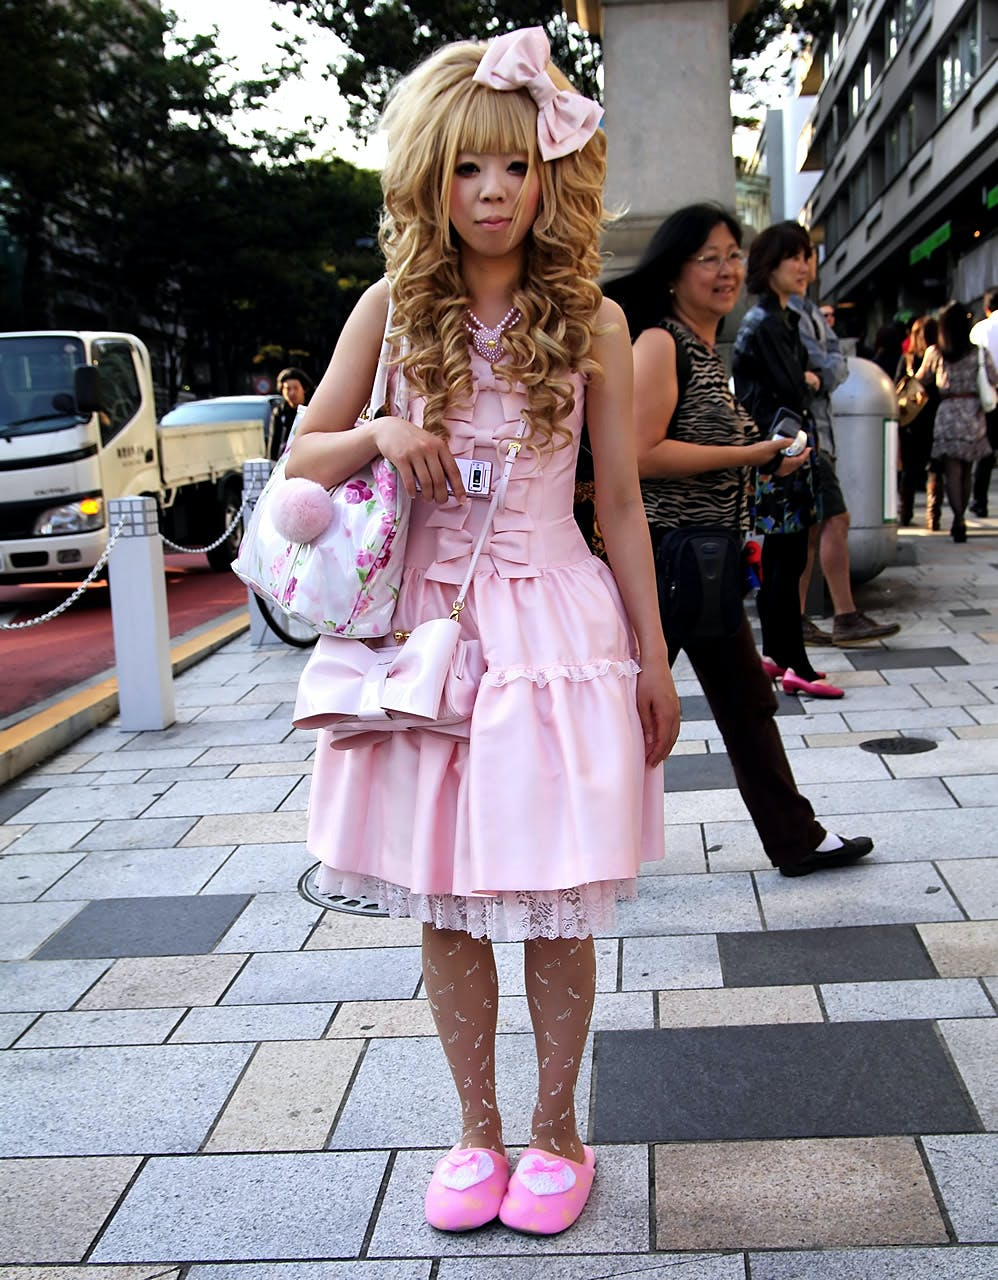 LOLITA FASHION COMMUNITUES PARTICIPANTS OPINIONS